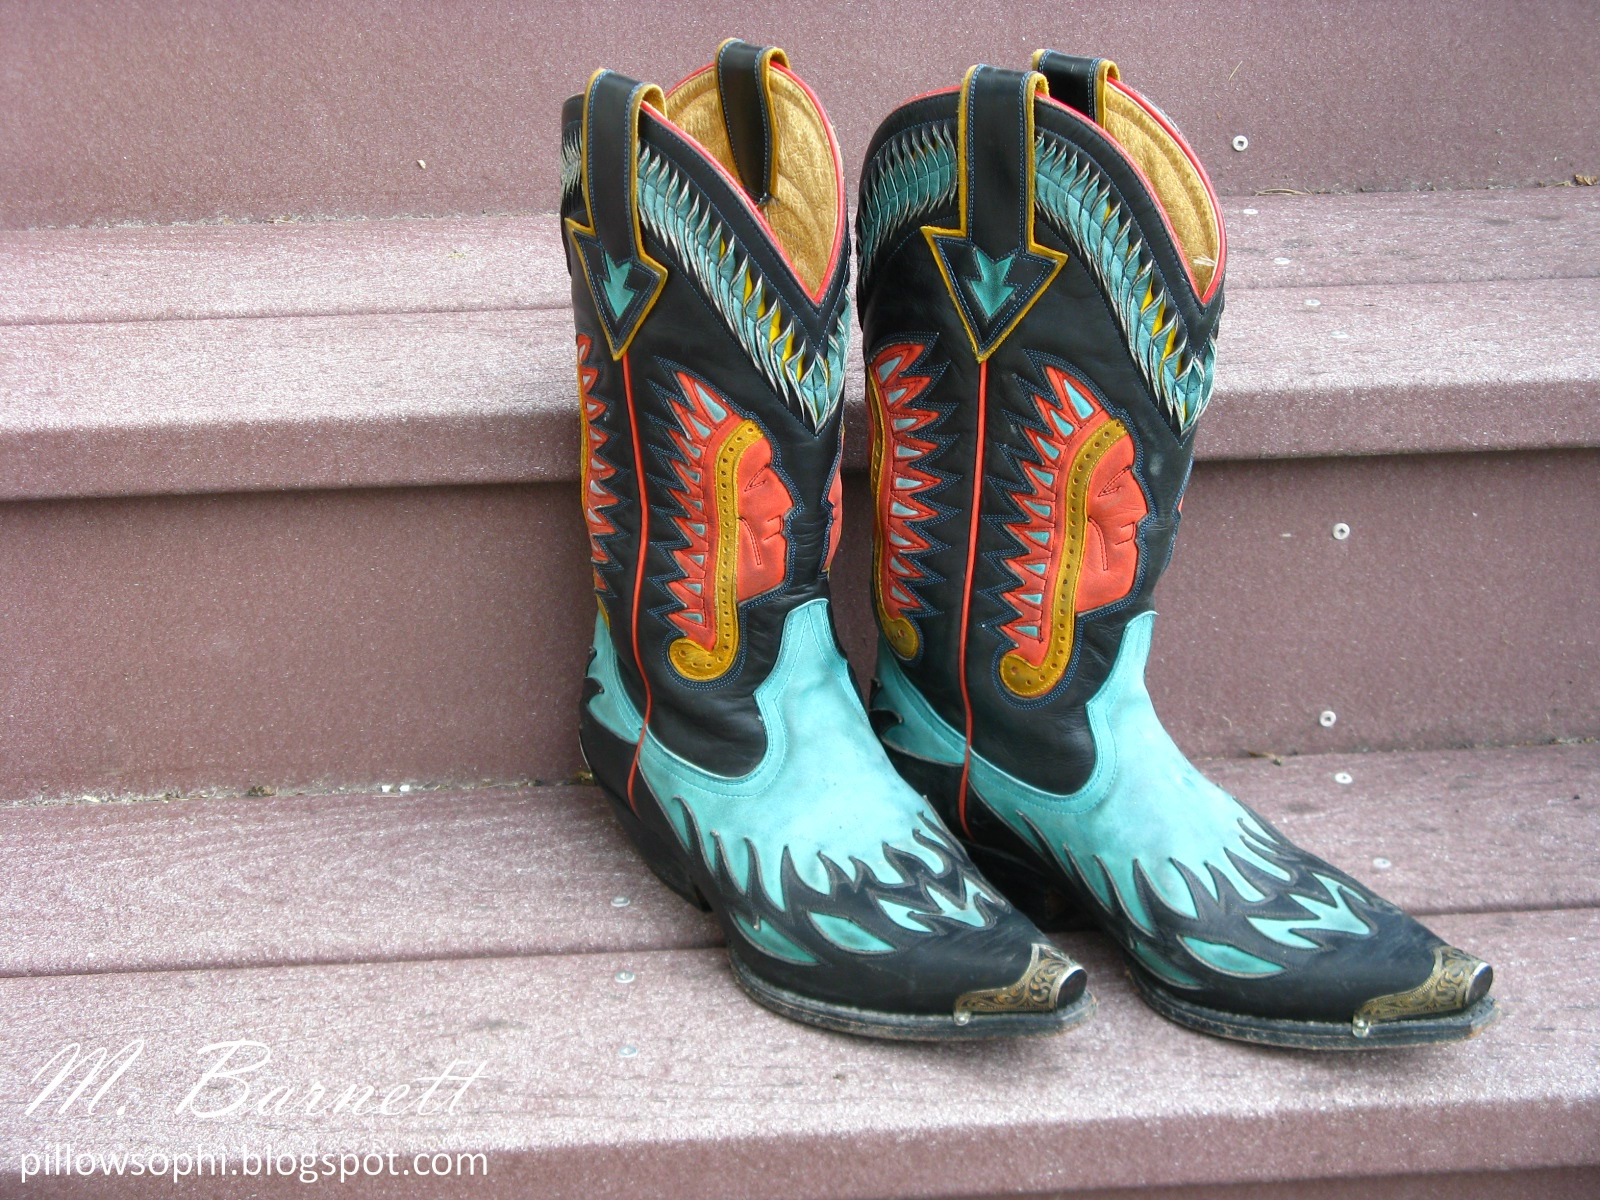 Pillowsophi Vintage: These Boots Were Made For Rockin' (Alternate ...